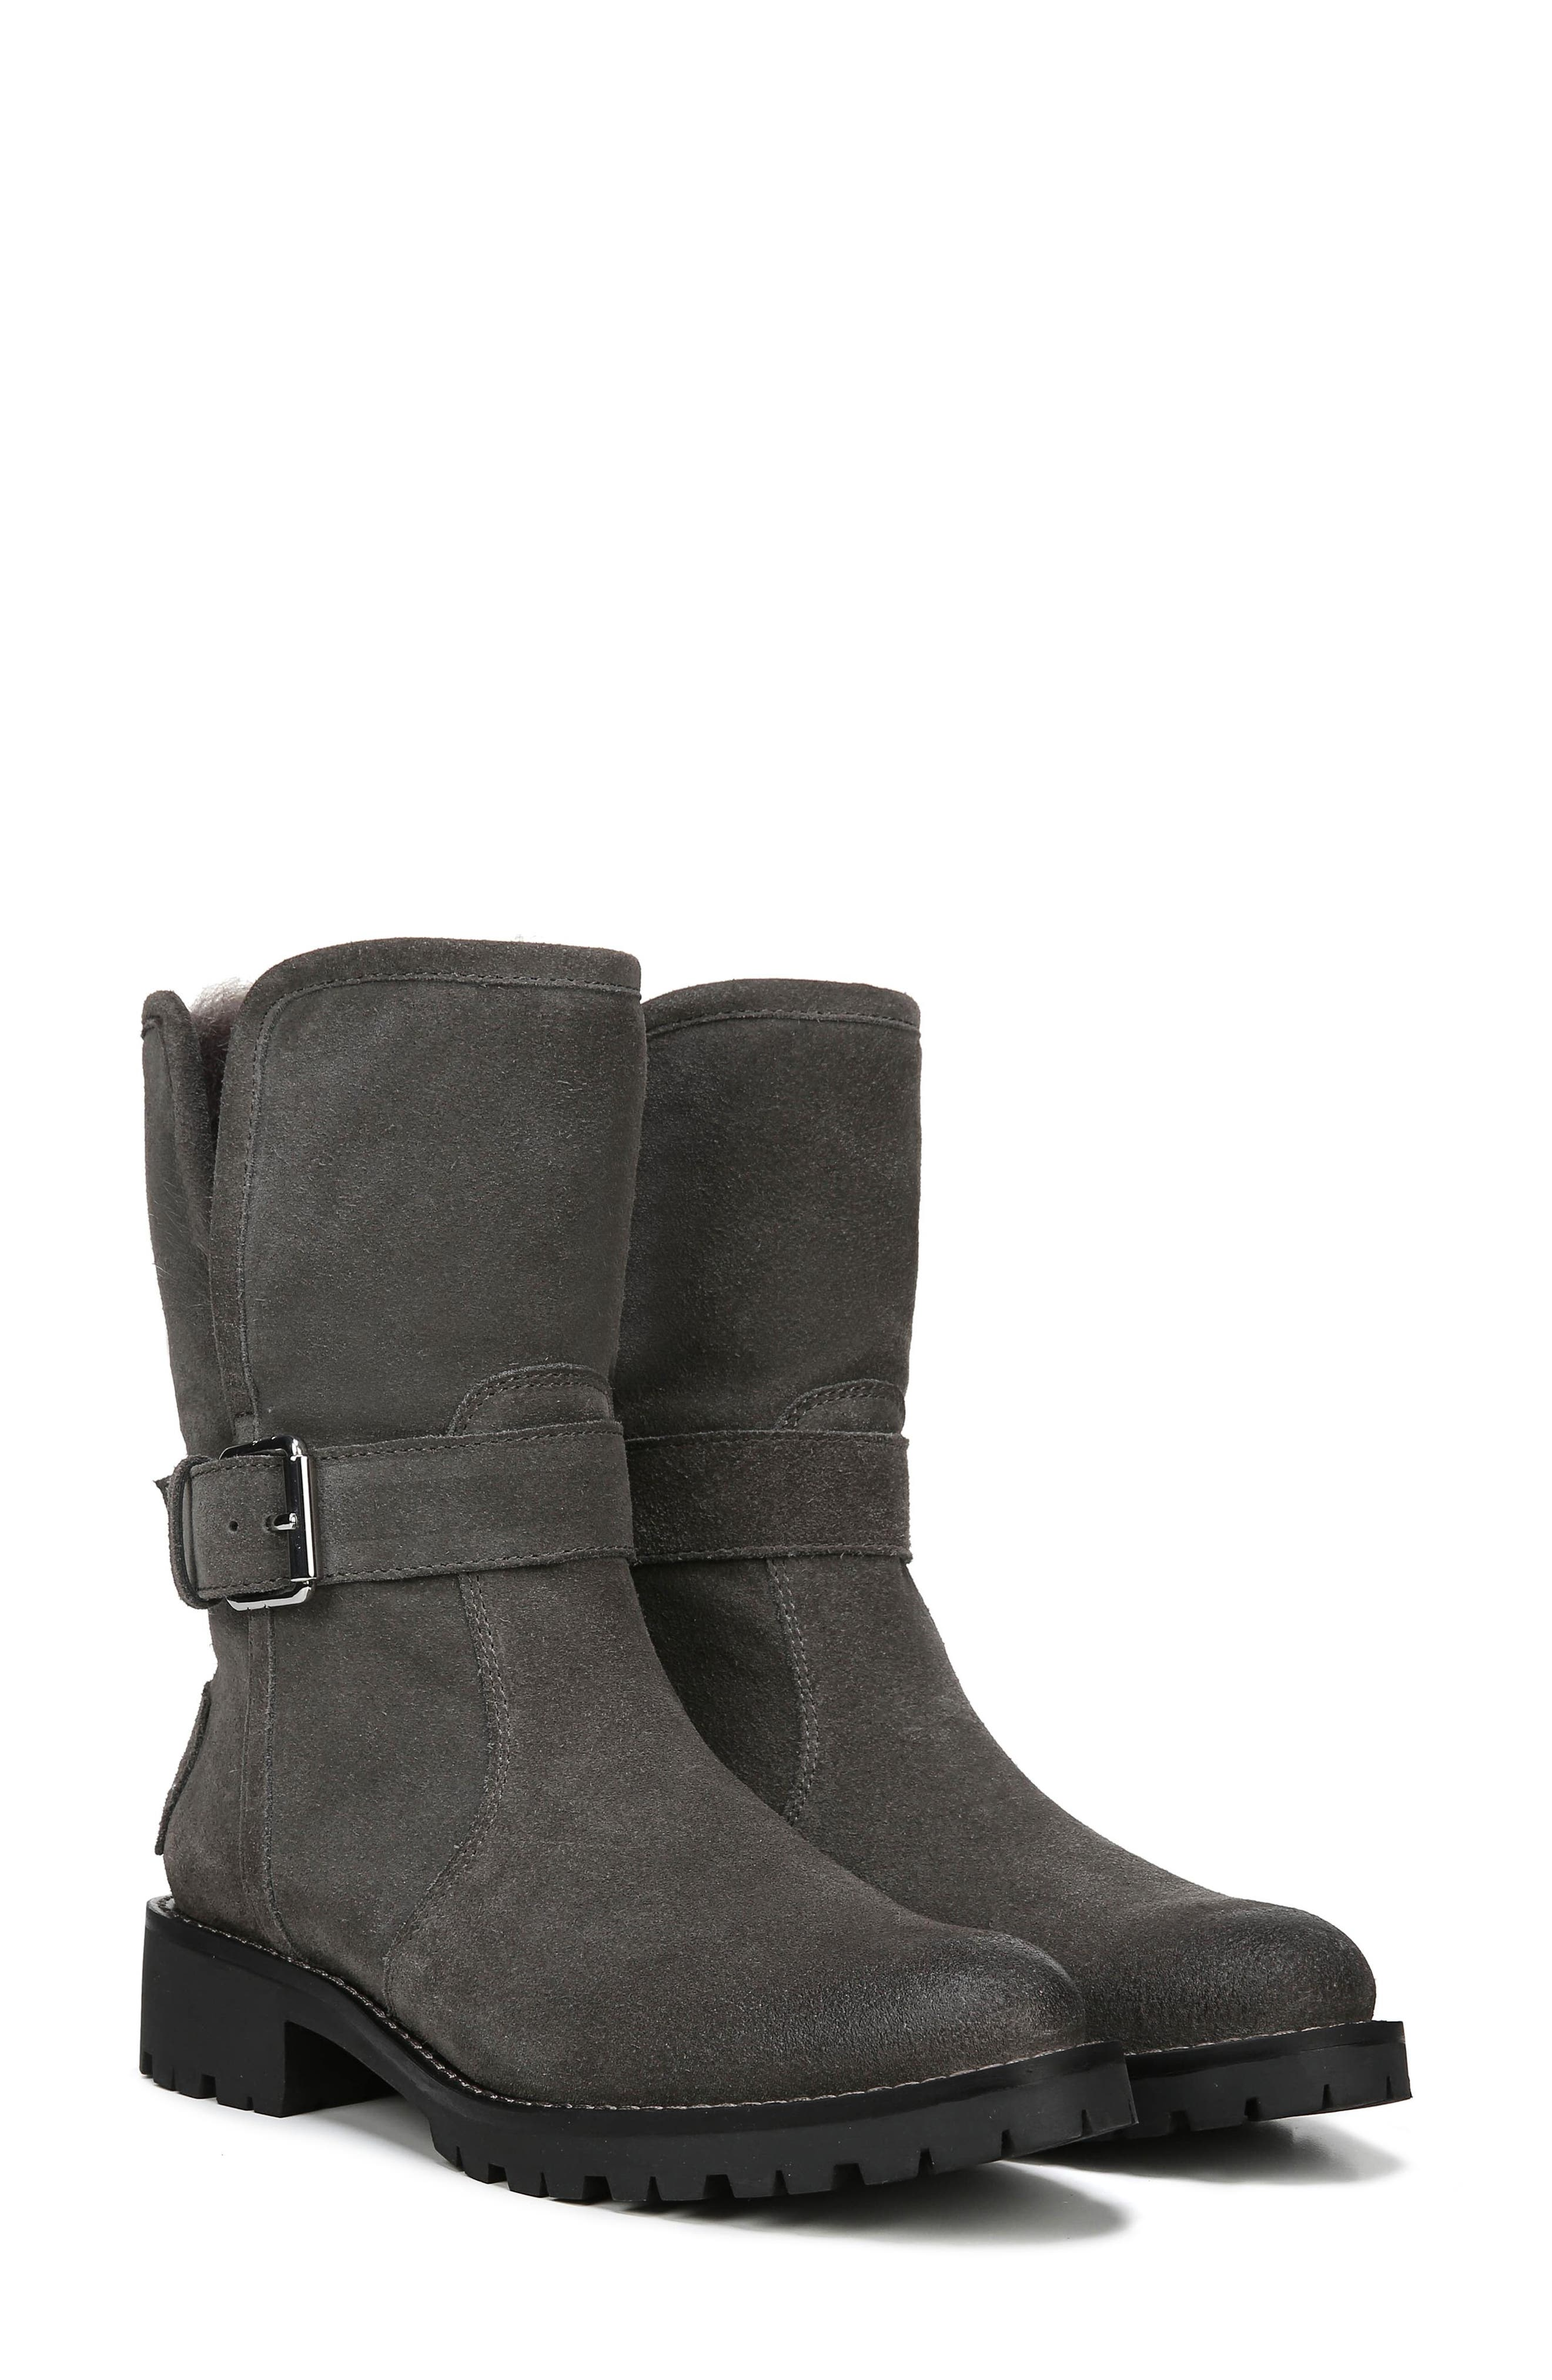 Jeanie Boot,                             Alternate thumbnail 9, color,                             STEEL GREY SUEDE